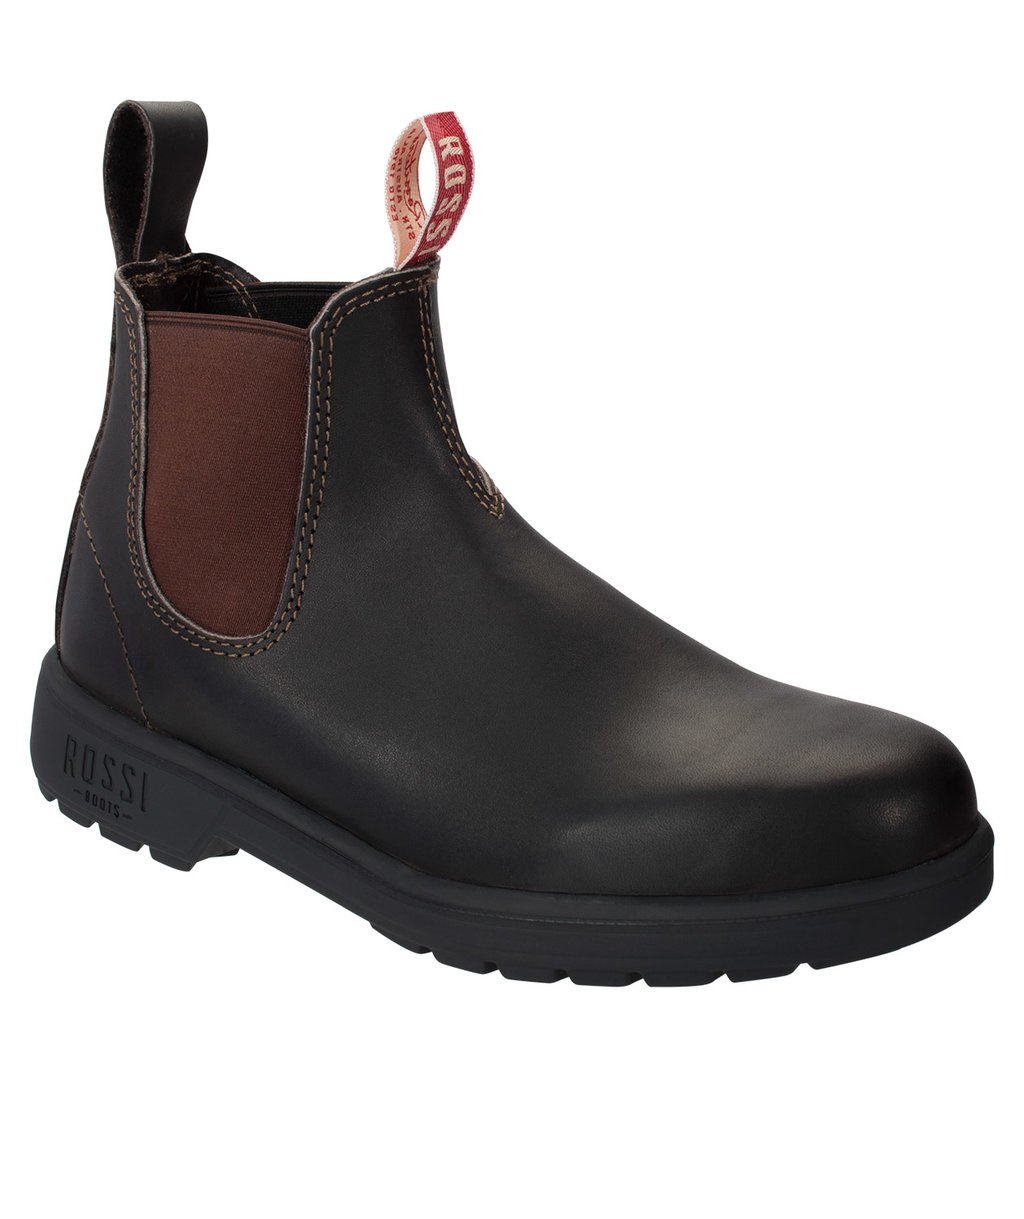 Rossi Endura 303 boots, Brown